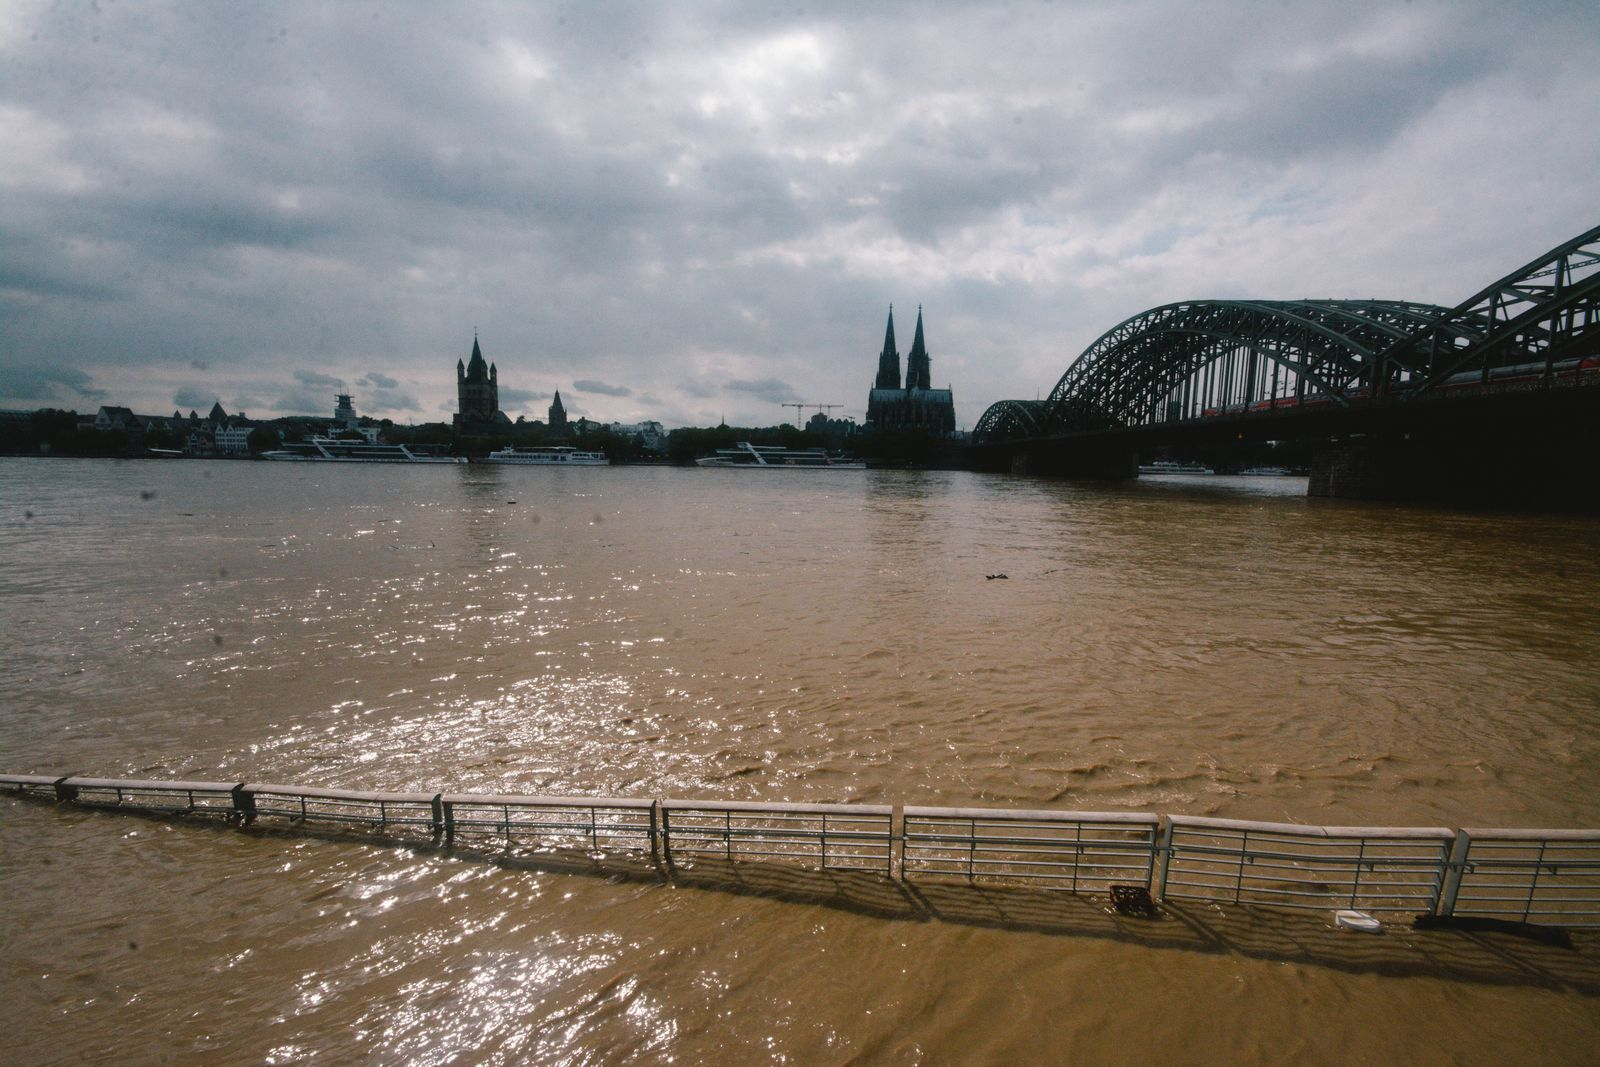 Flood In Cologne Continues Flooding scene is seen from Rhine river in Cologne, Germany on July 15, 2021 as NRW experienc